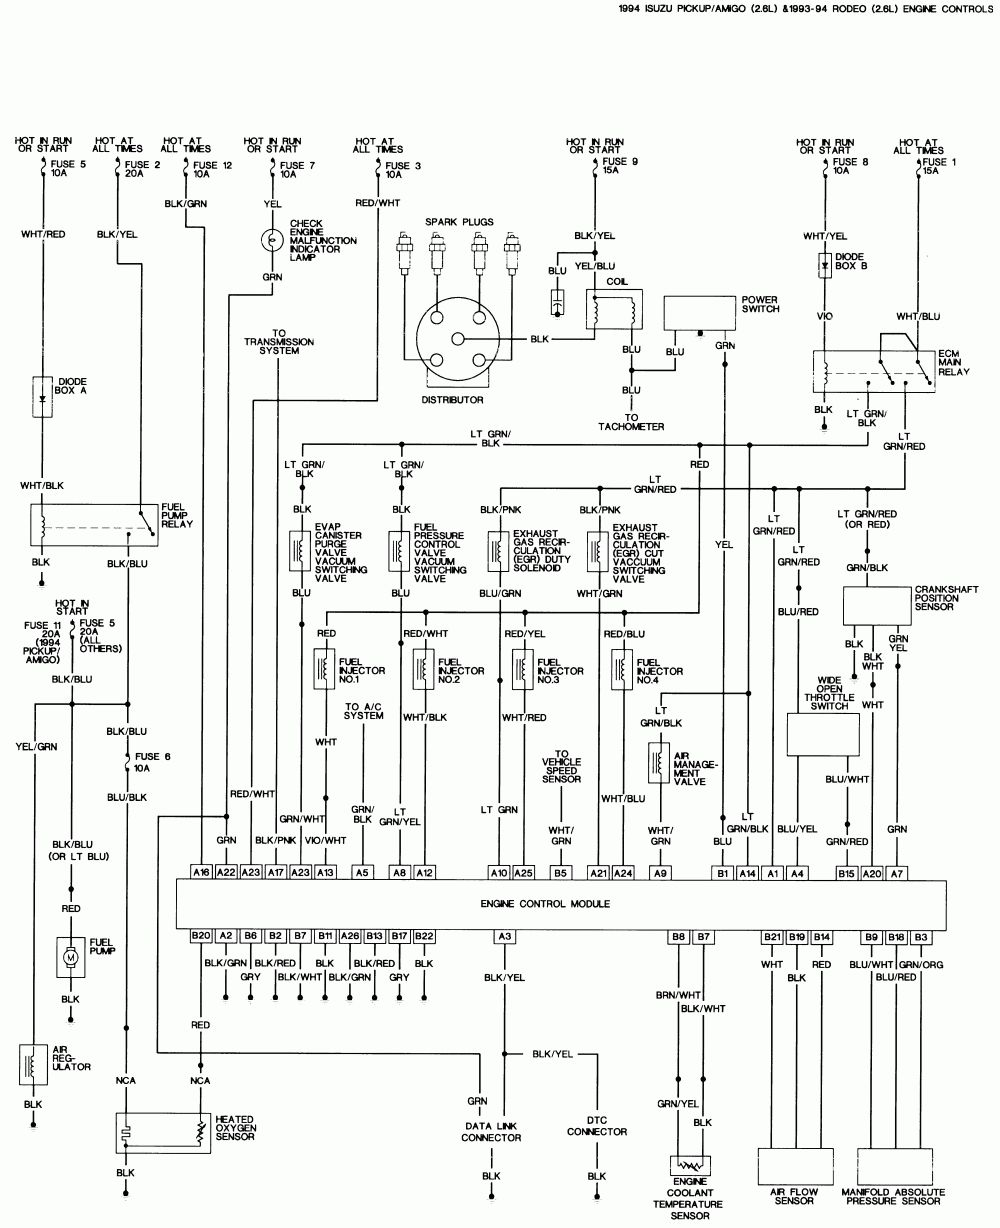 1988 isuzu pickup wiring diagram isuzu npr electrical wiring diagram electrical wiring diagram  isuzu npr electrical wiring diagram